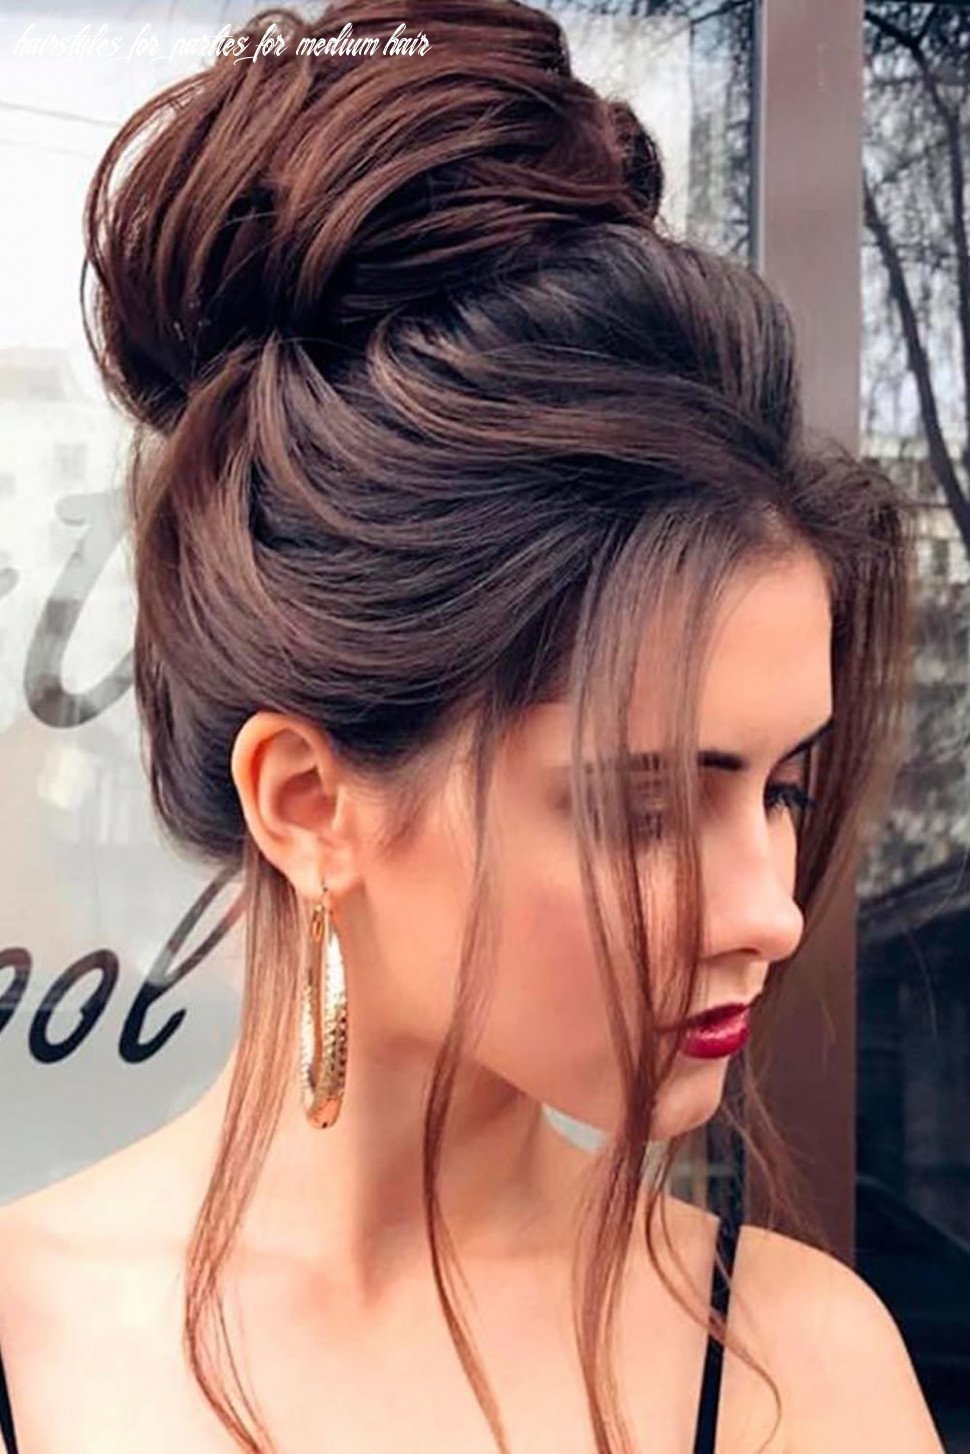 Sexy short hairstyles for women haircuts for men: 8 fun and chic